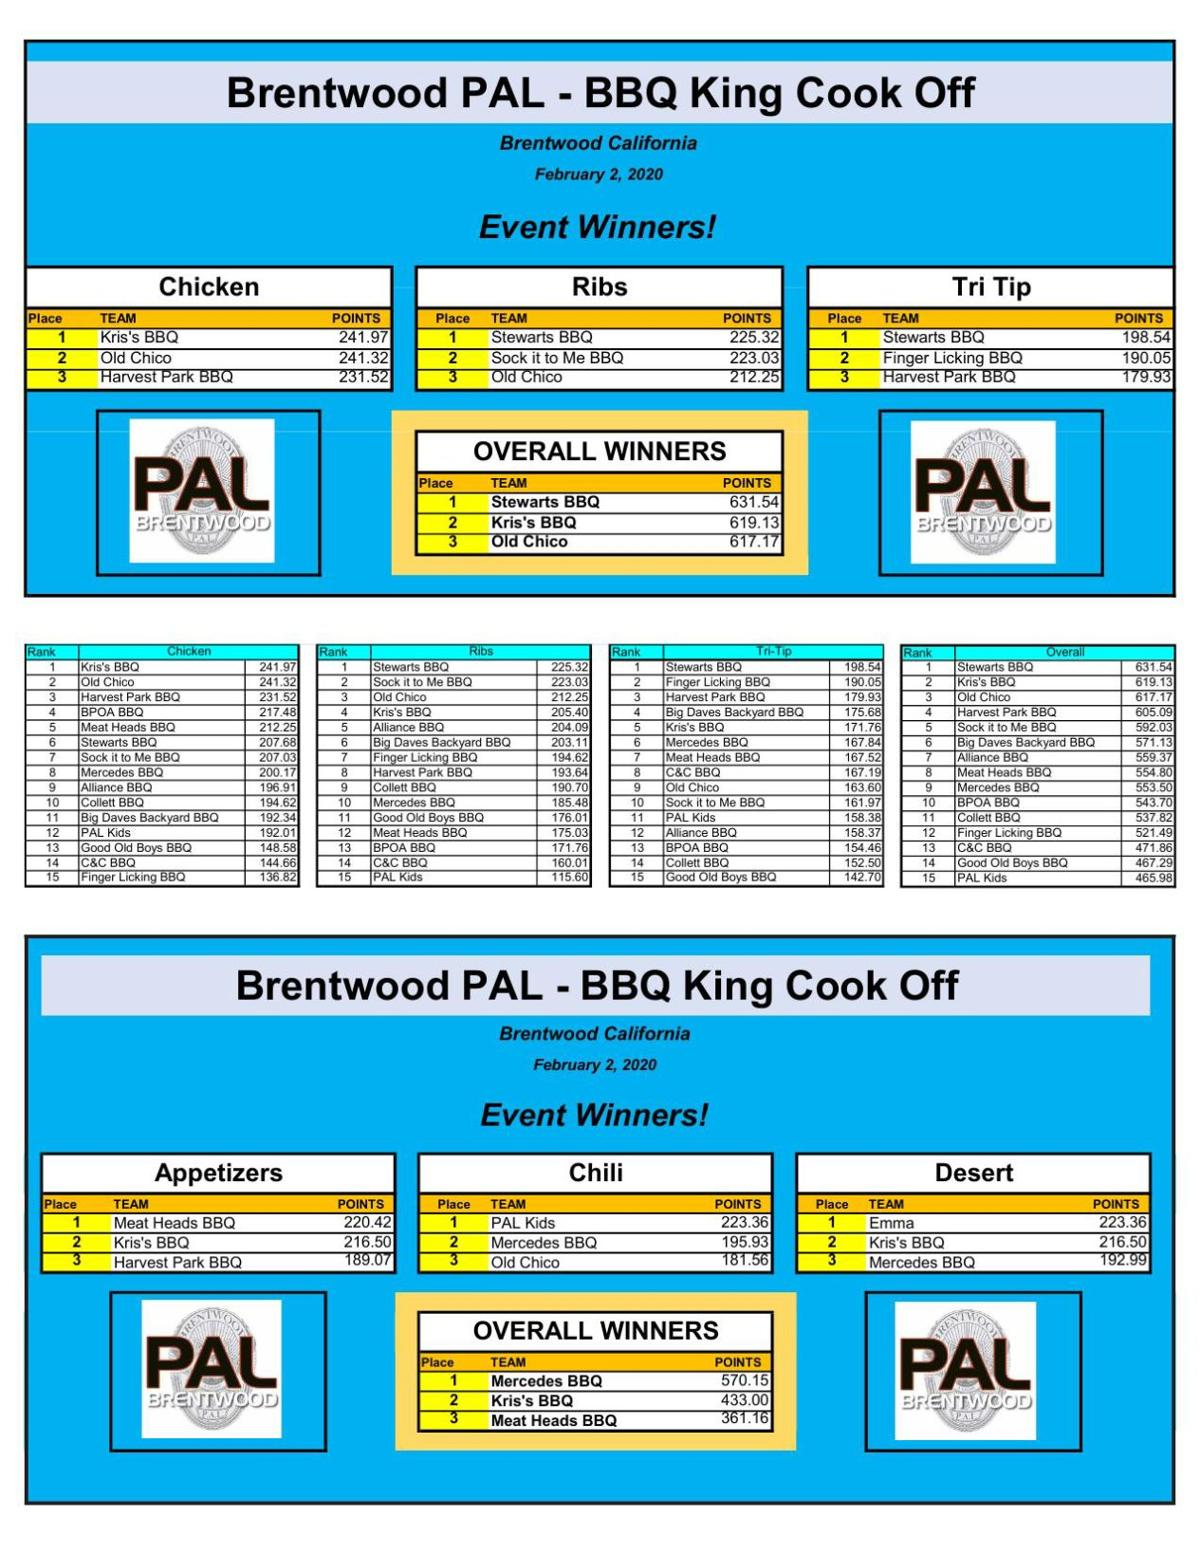 Brentwood PAL 2020 BBQ King Cook Off Winners